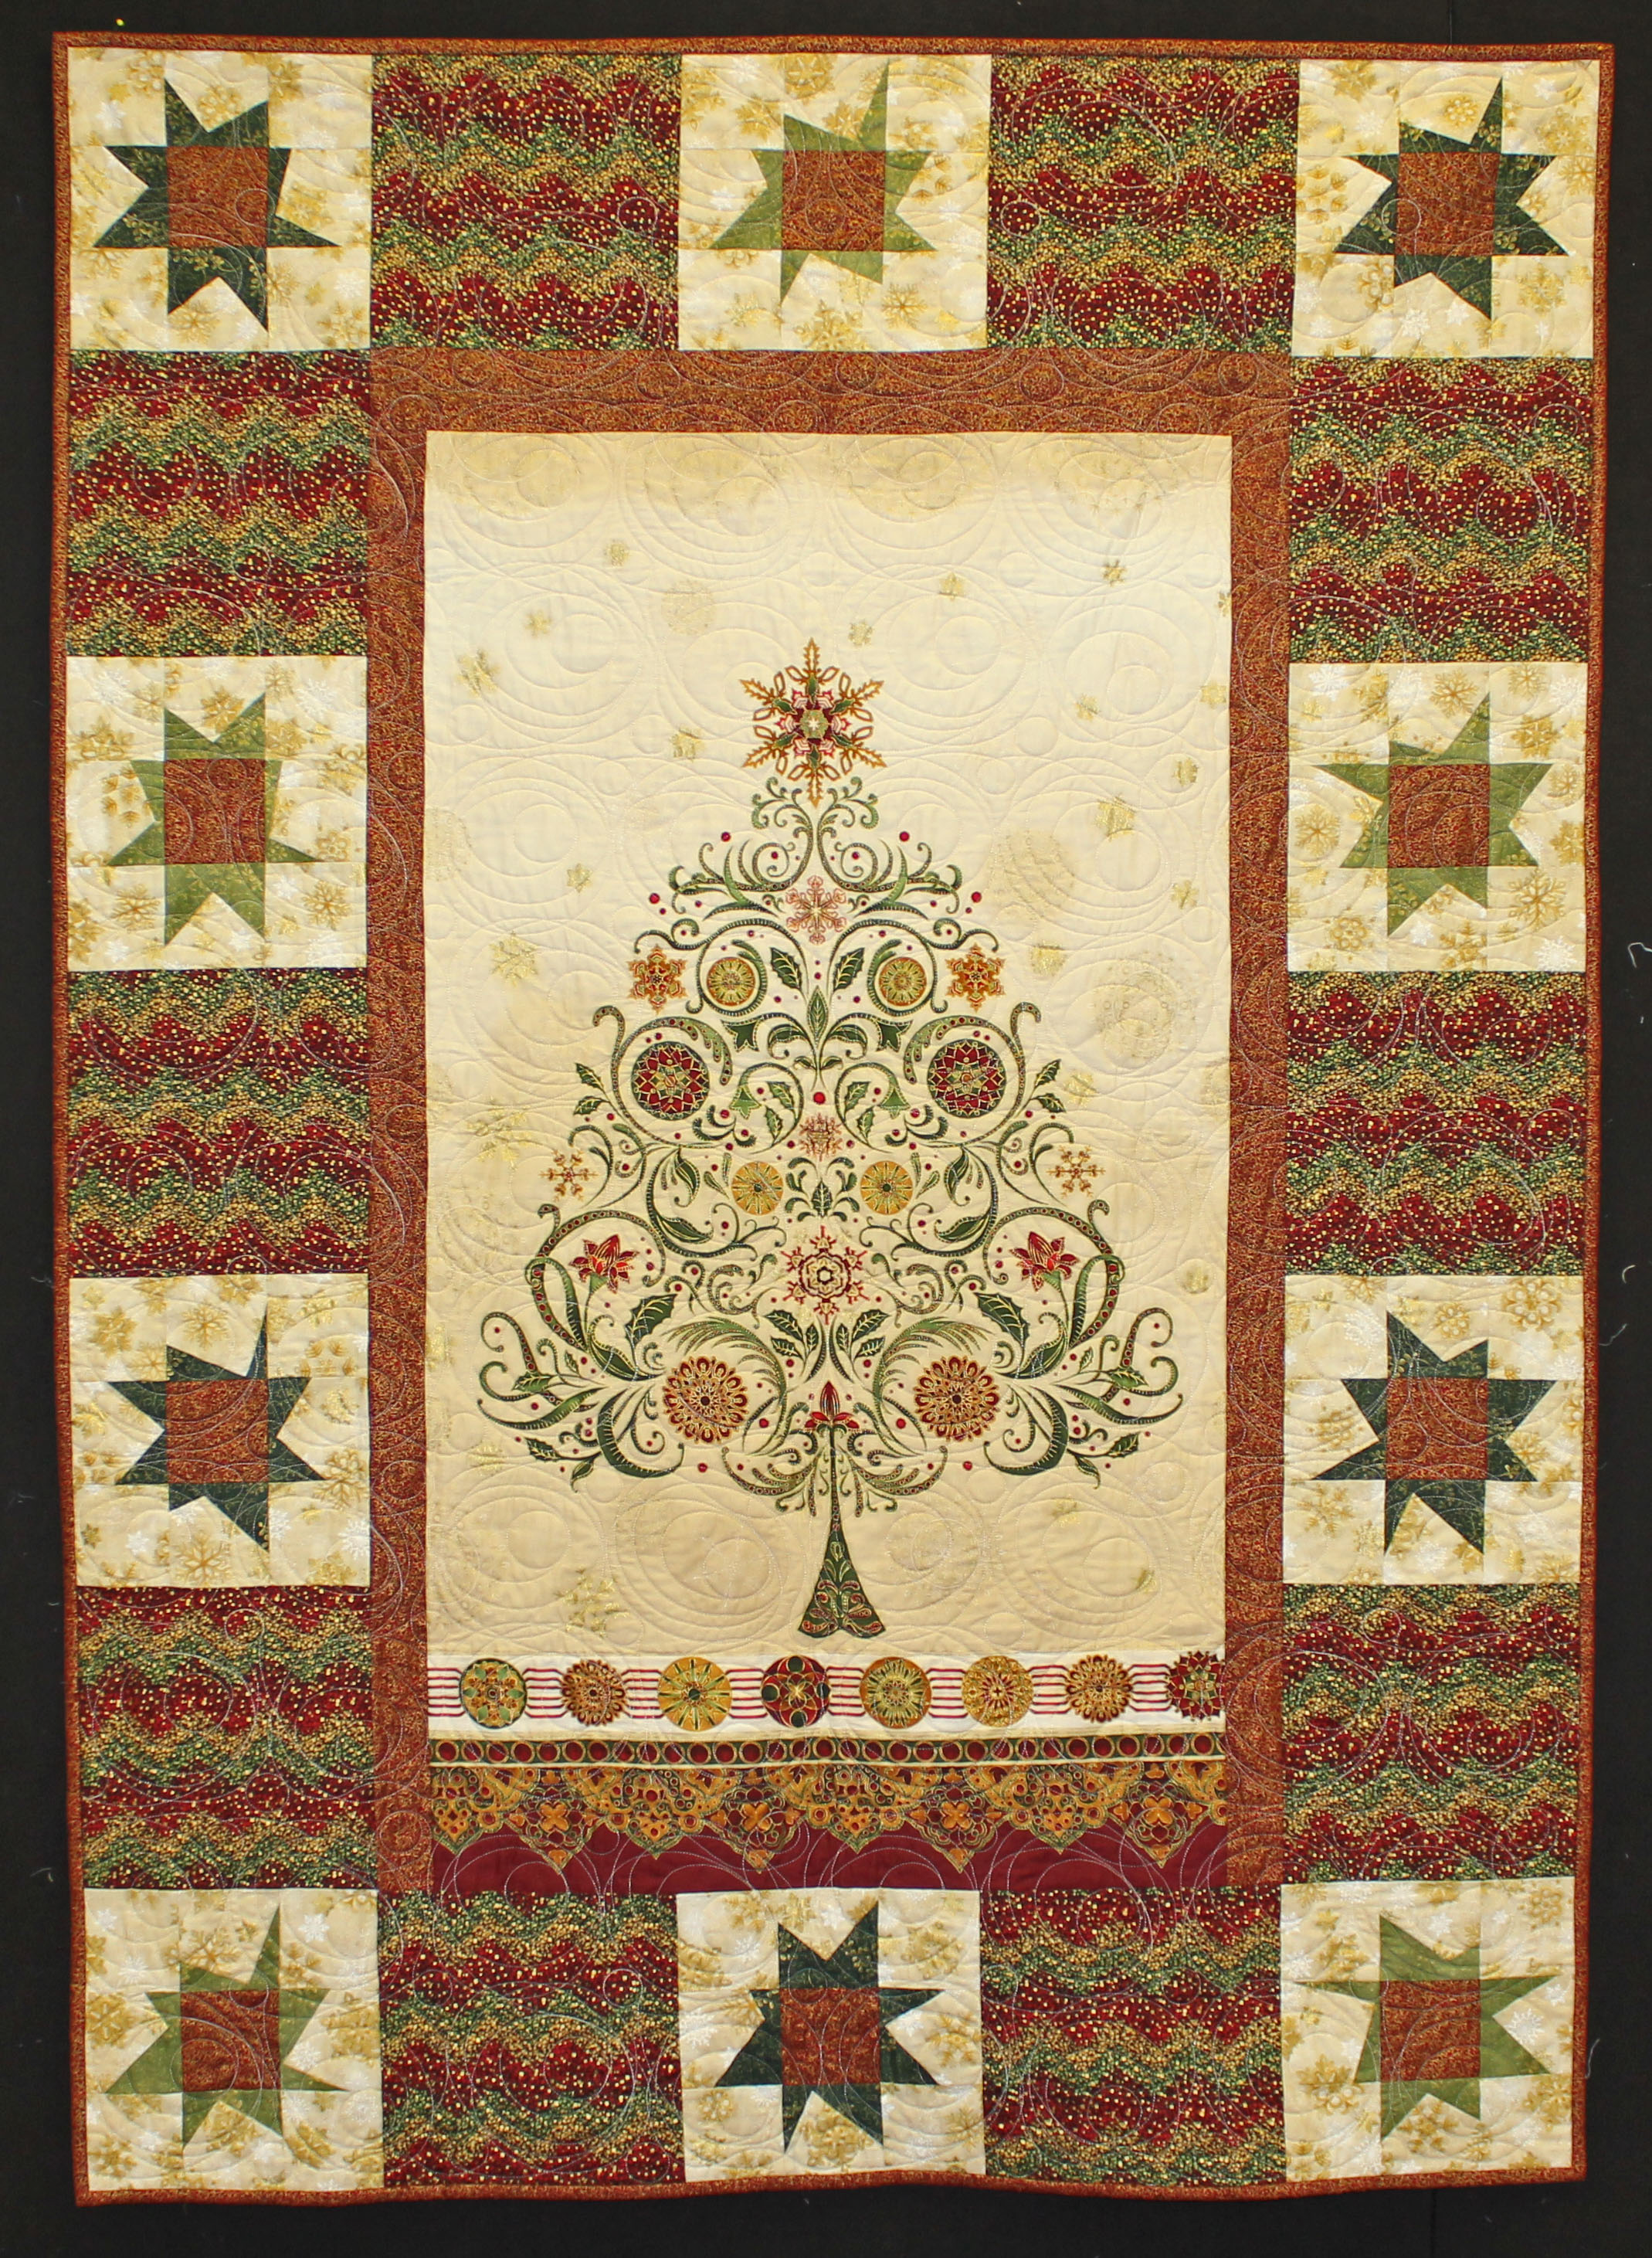 Quilt Ideas For Panels : 31 Days of Holiday Gifts: Day 27 Winter s Grandeur Panel Quilt Quilter s Way Blog